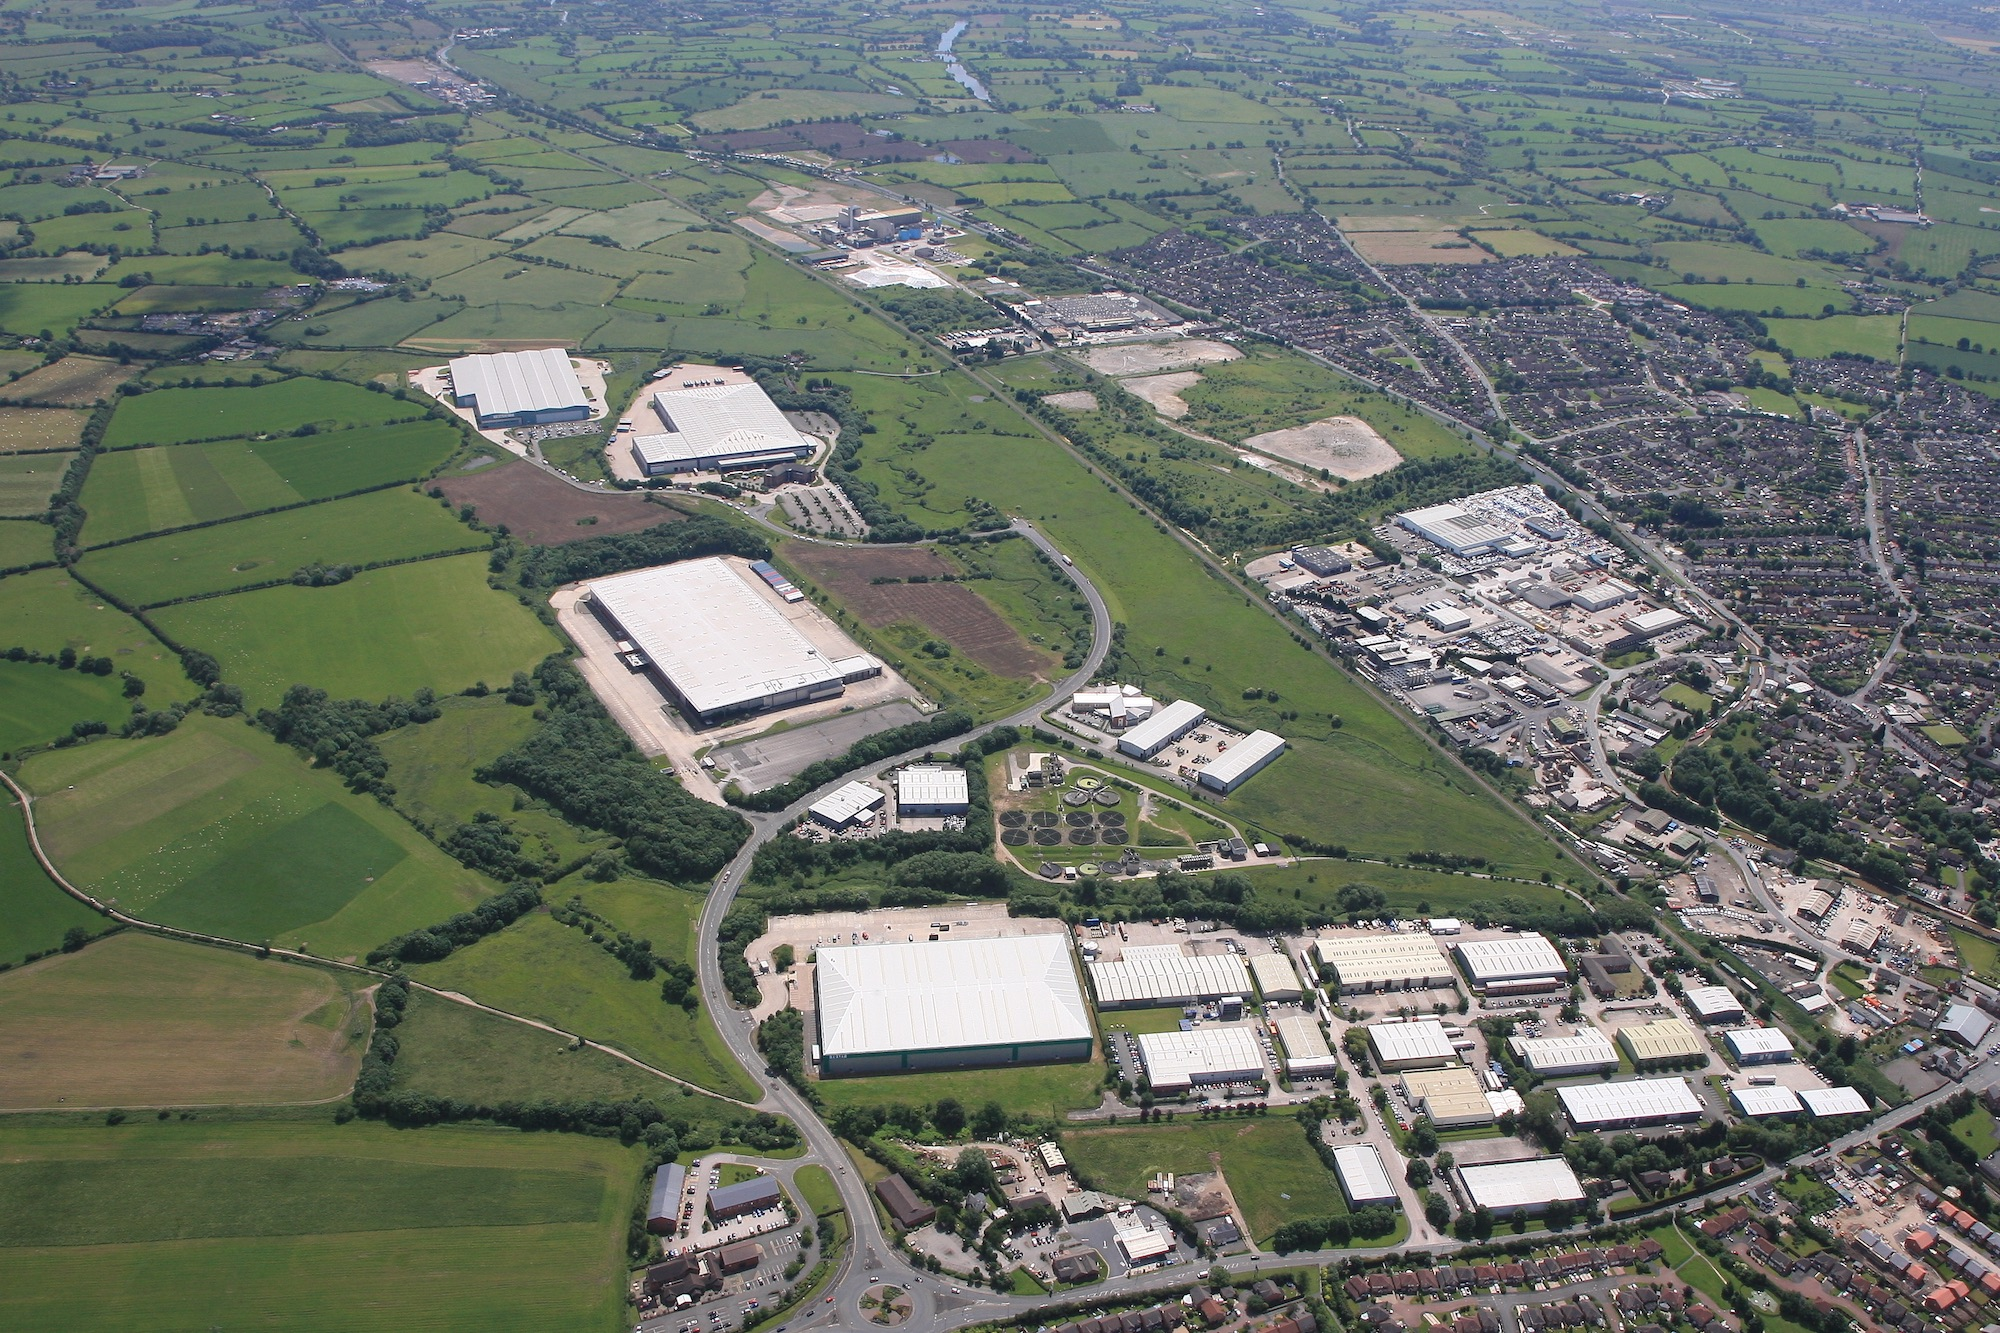 Planning application submitted for Phase 1 warehouse at MA6NITUDE